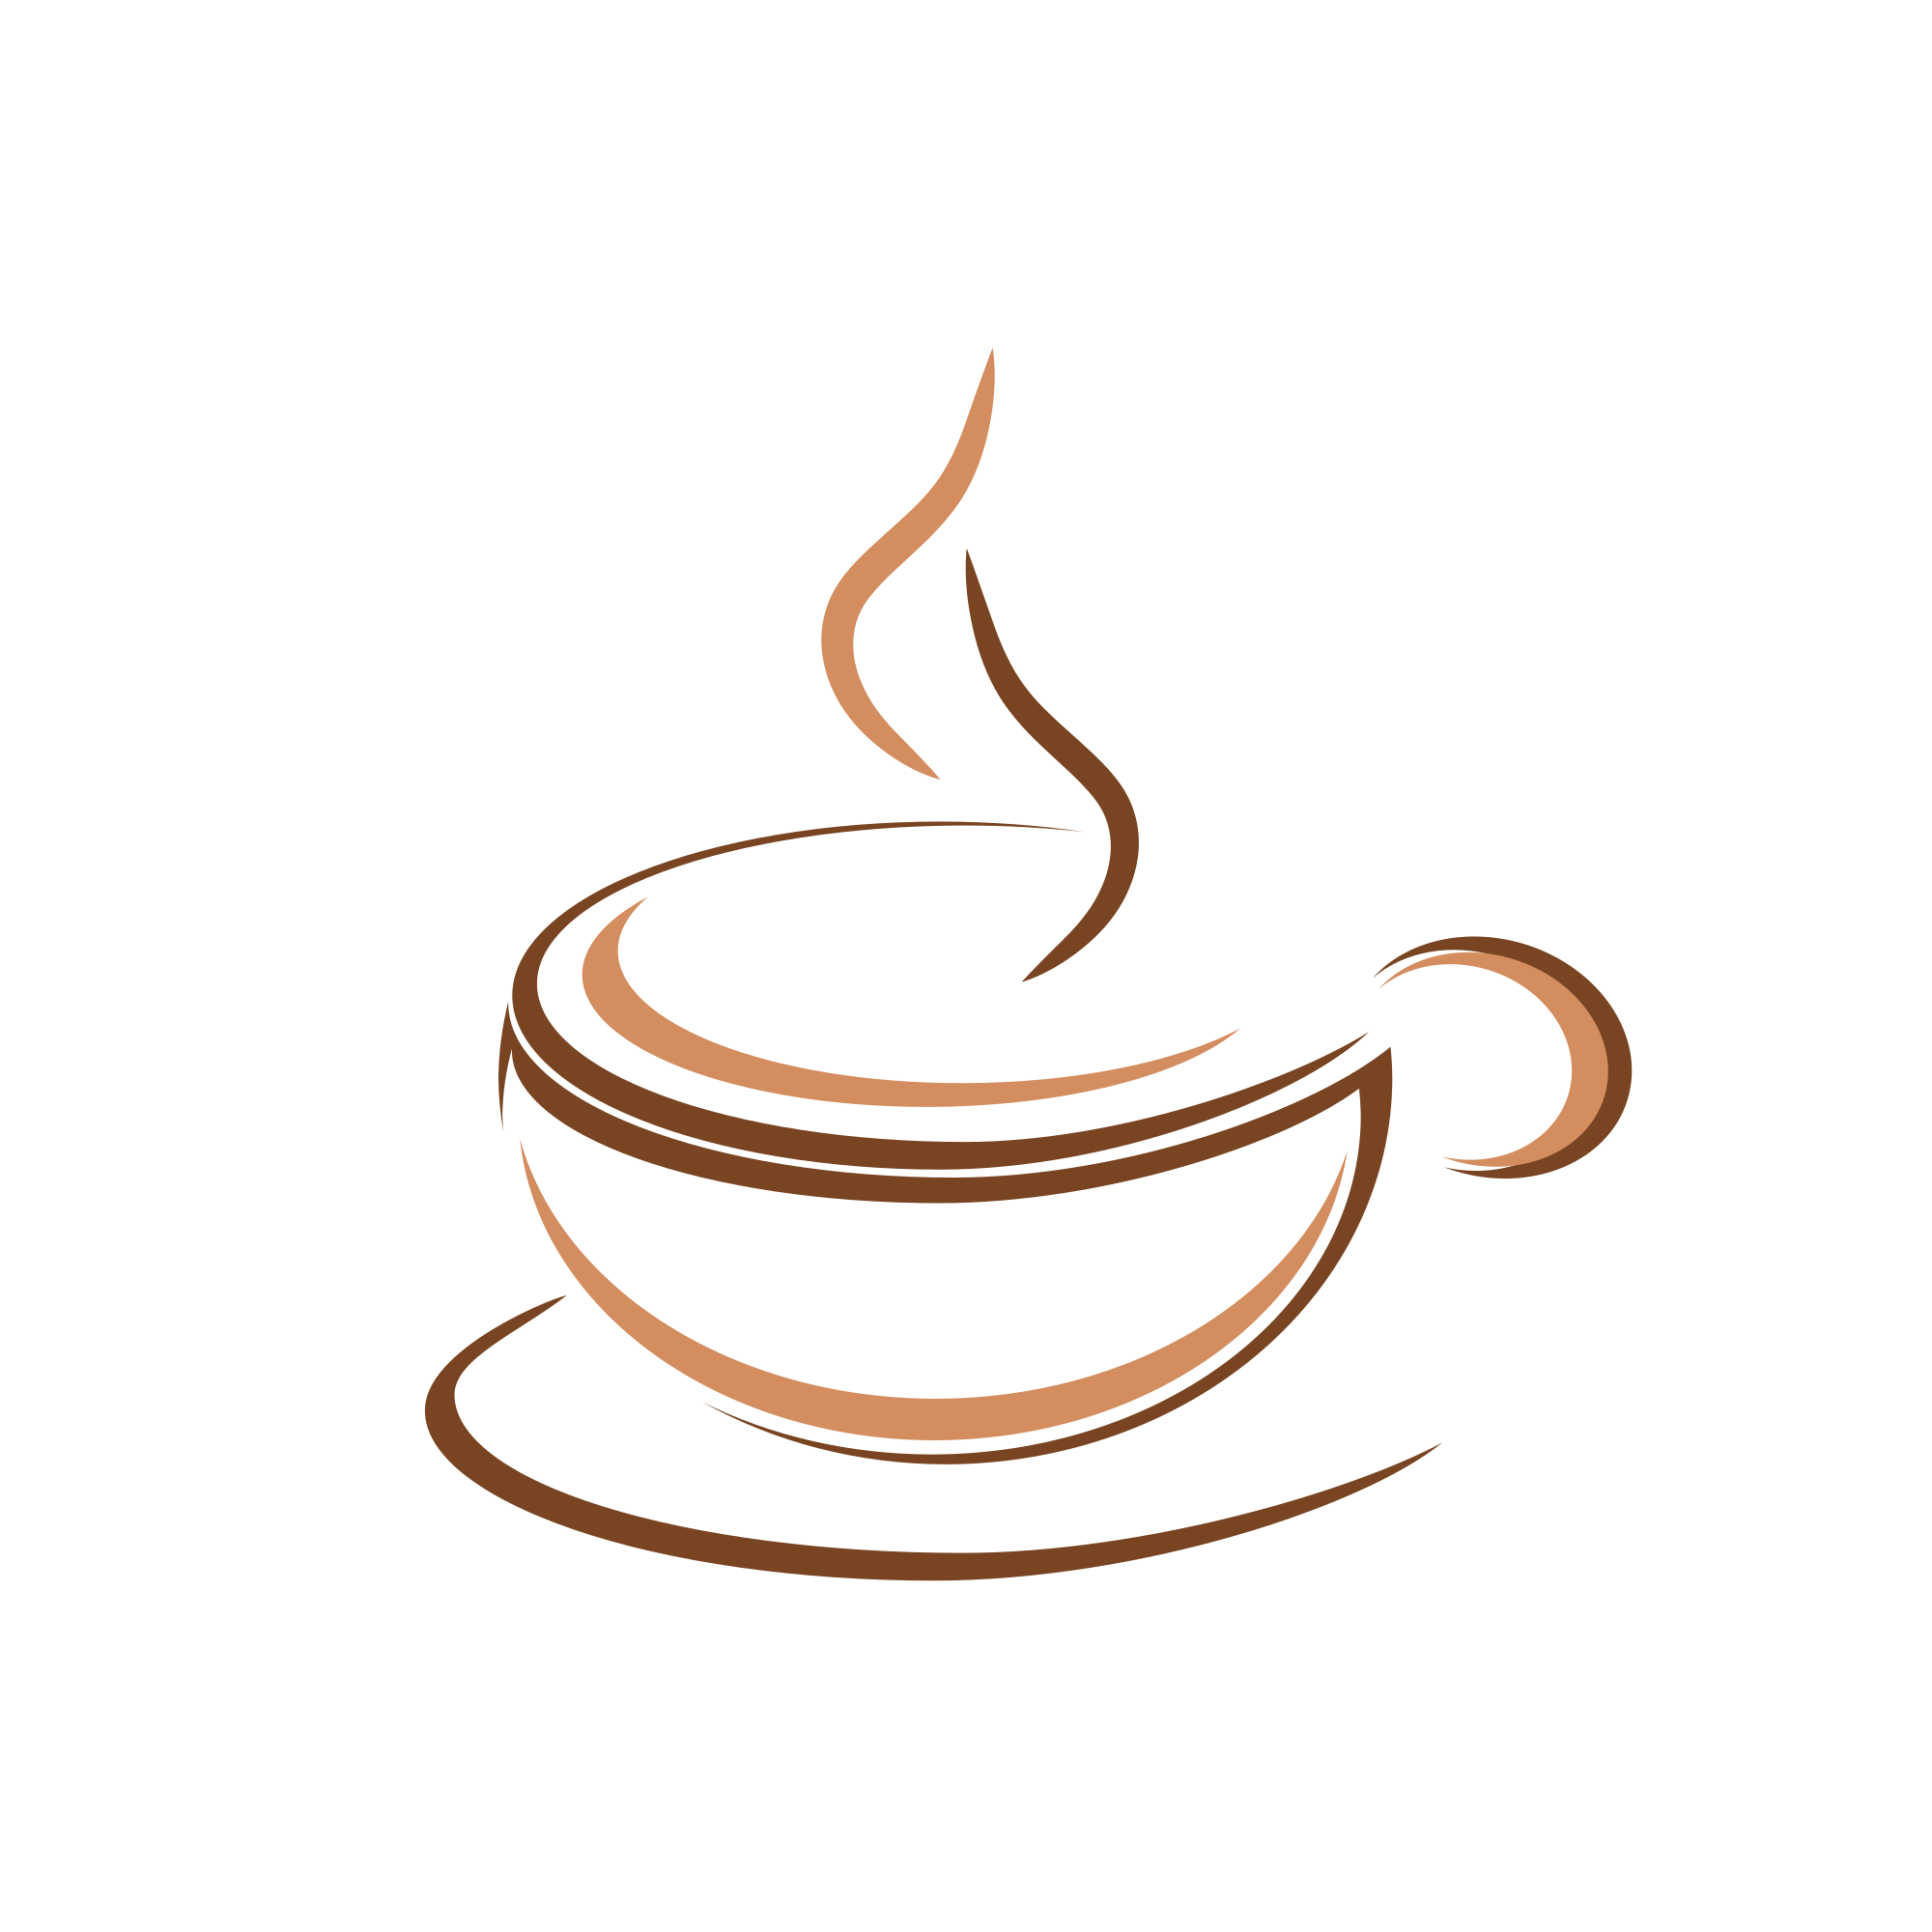 coffee logo design creative idea logo elements #7502